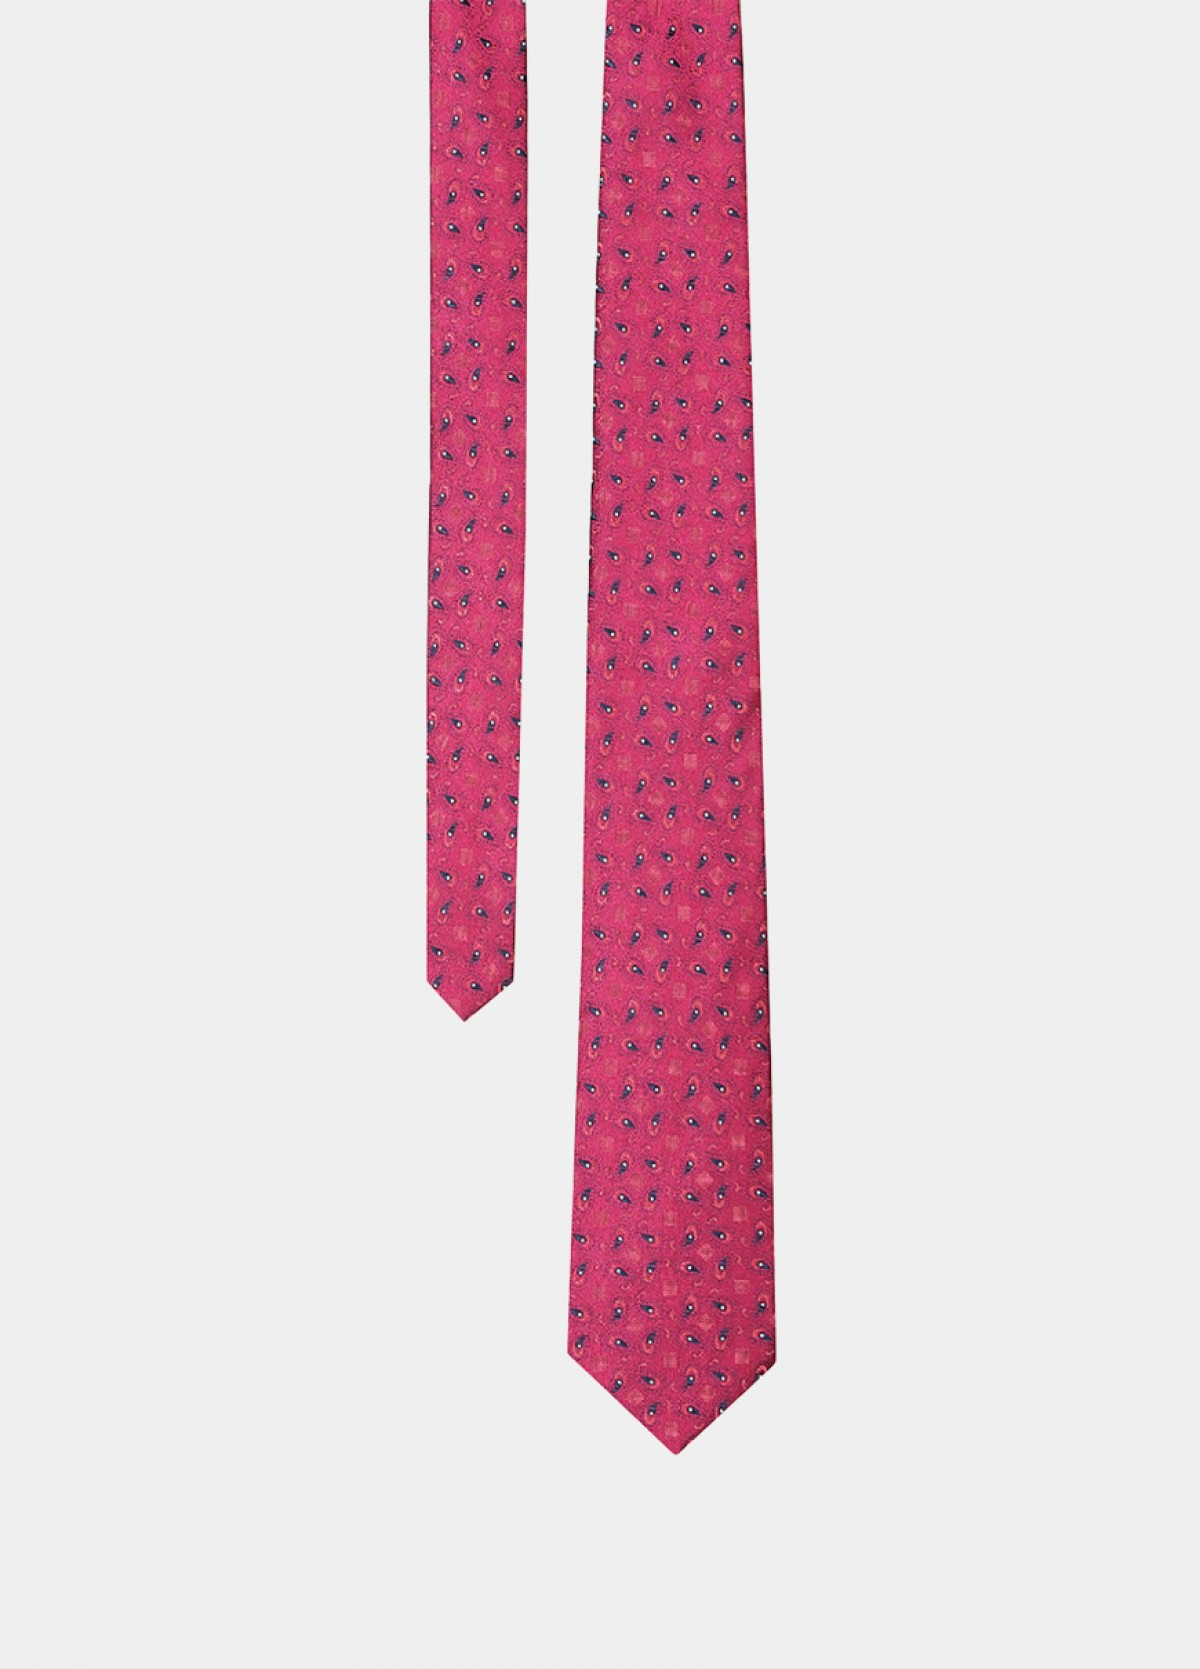 The Pink Magenta Stain Resistant Tie